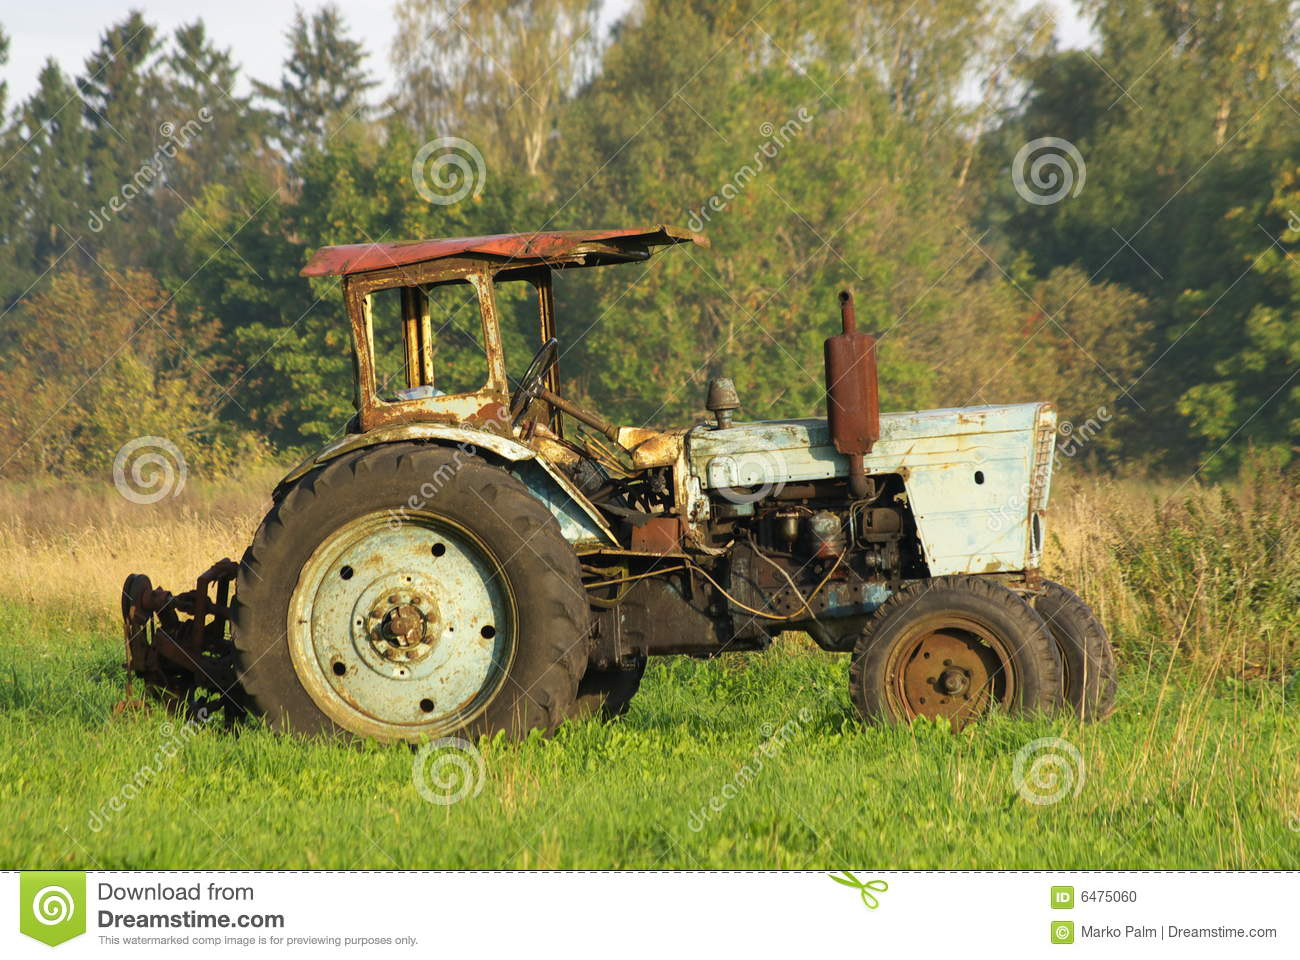 Dirty Girl Wallpaper Download Old Rusty Tractor Stock Photo Image 6475060